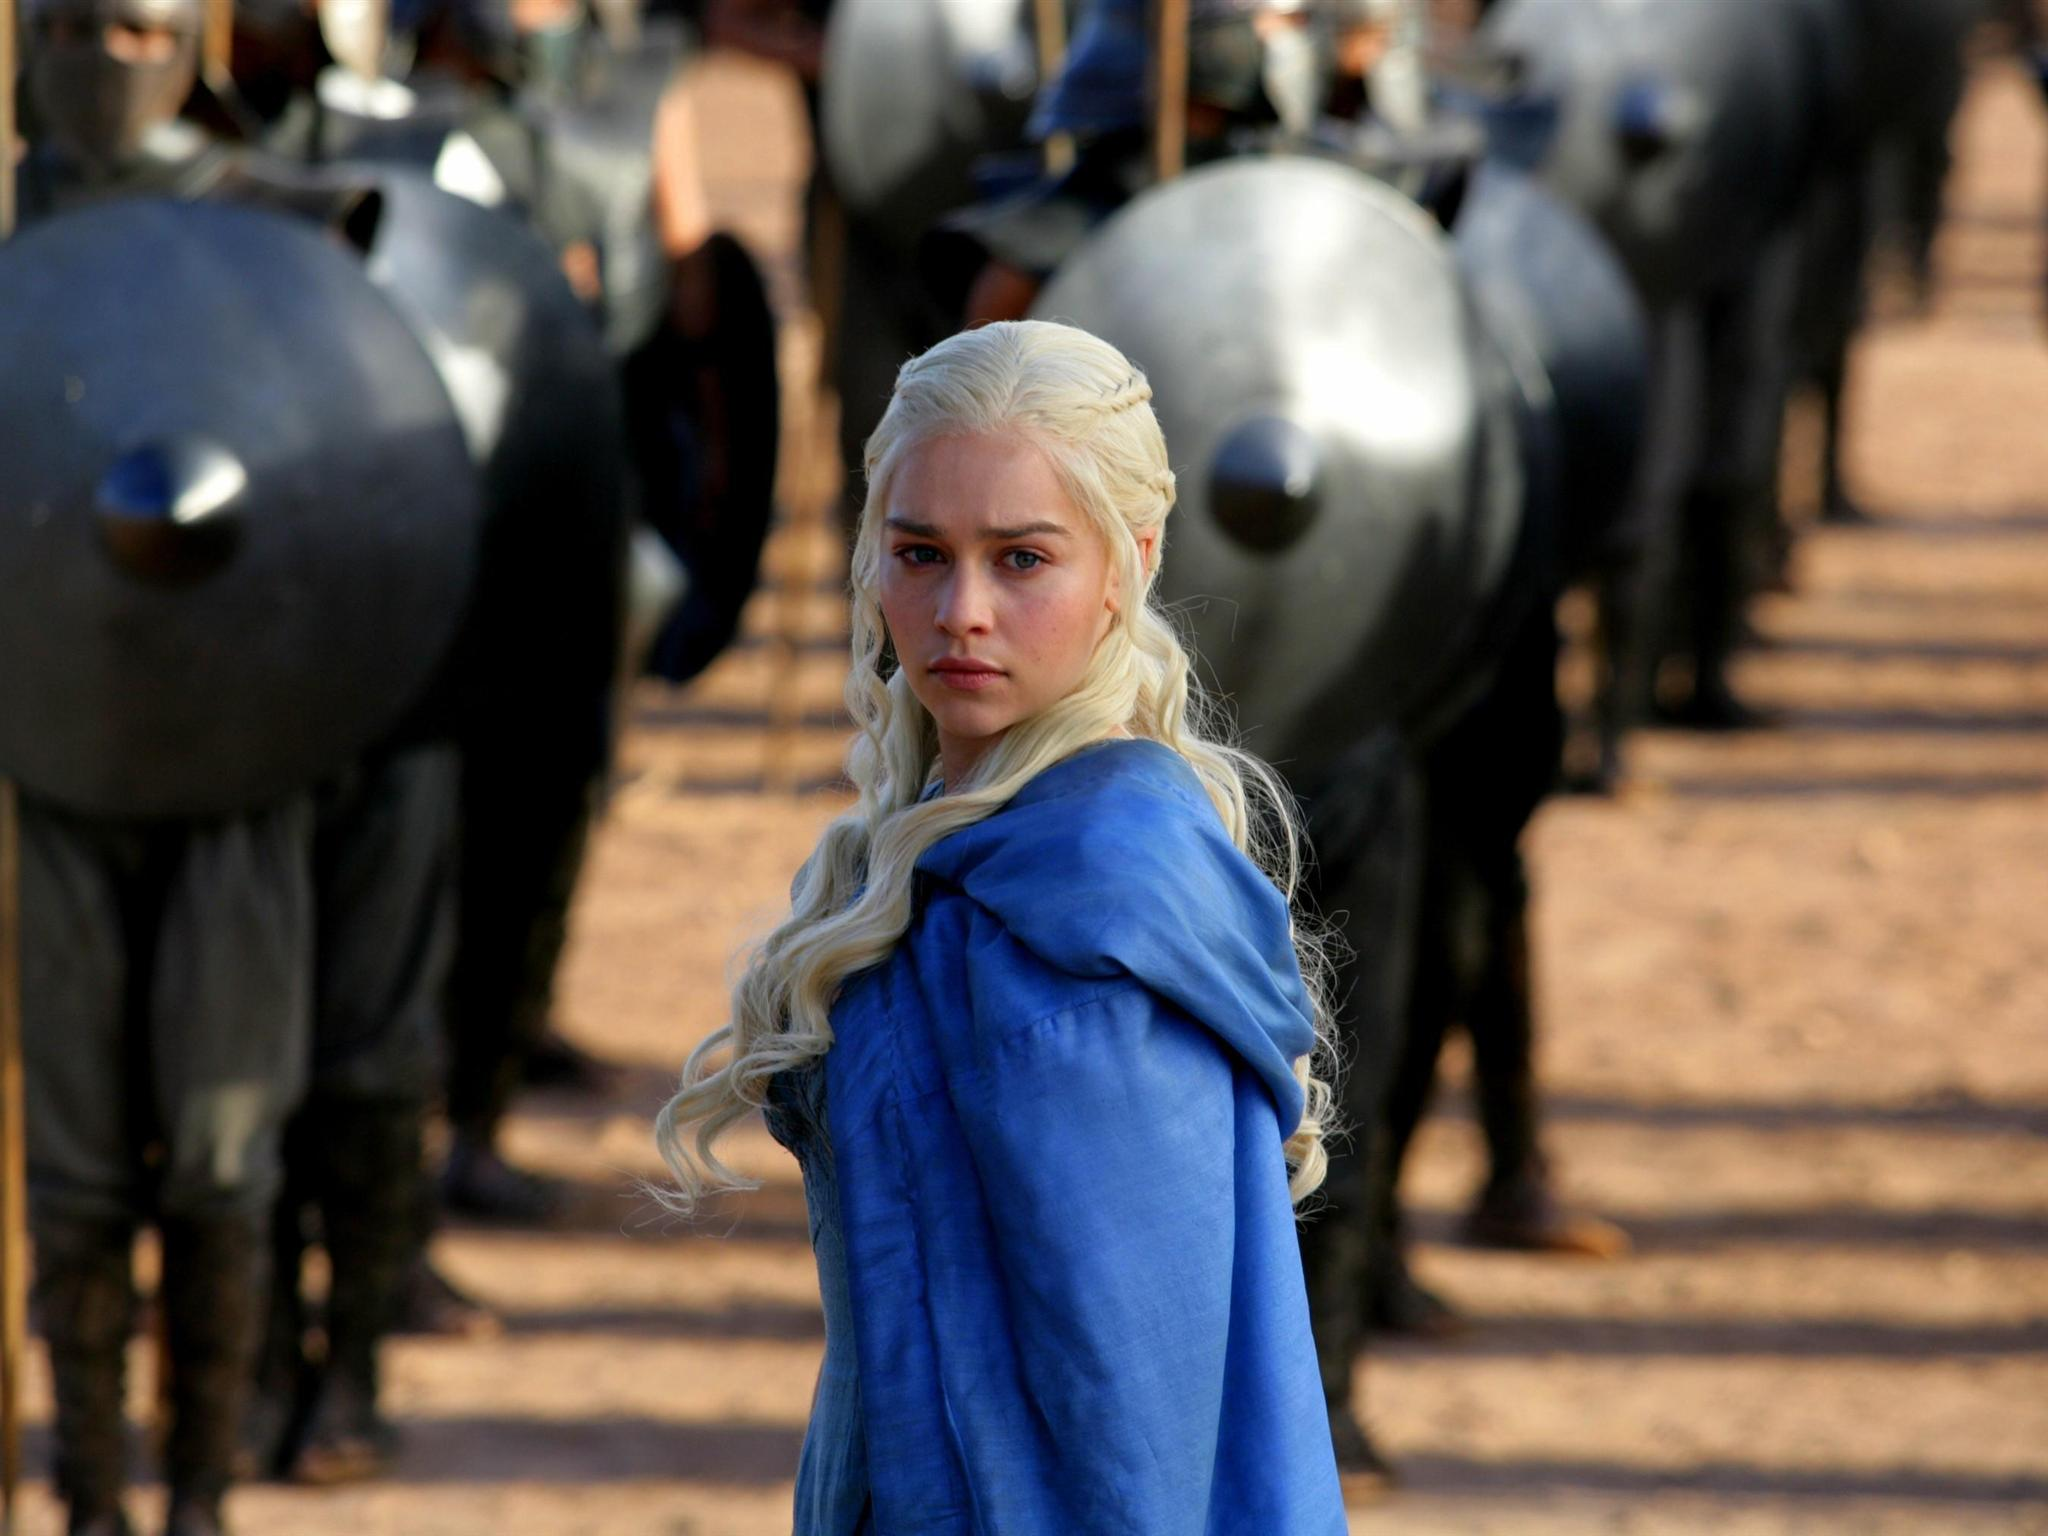 Game Of Thrones 2048x1536 Picture   Game Of Thrones  Emilia Clarke  HD Wallpaper